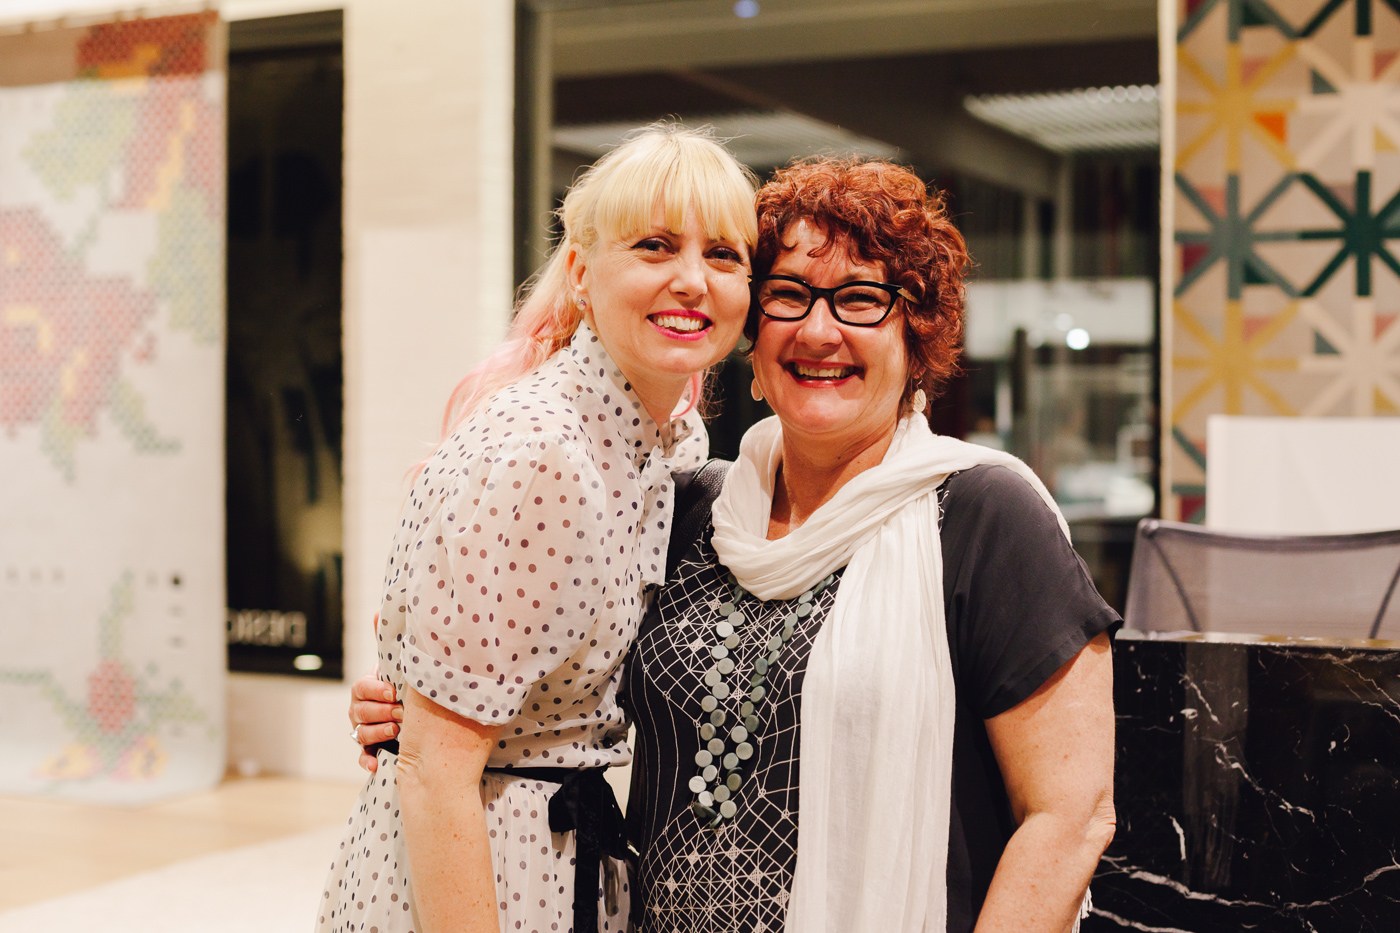 With Robyn Shrives | NEW AGAIN by Petrina Turner Design for Designer Rugs | The launch event